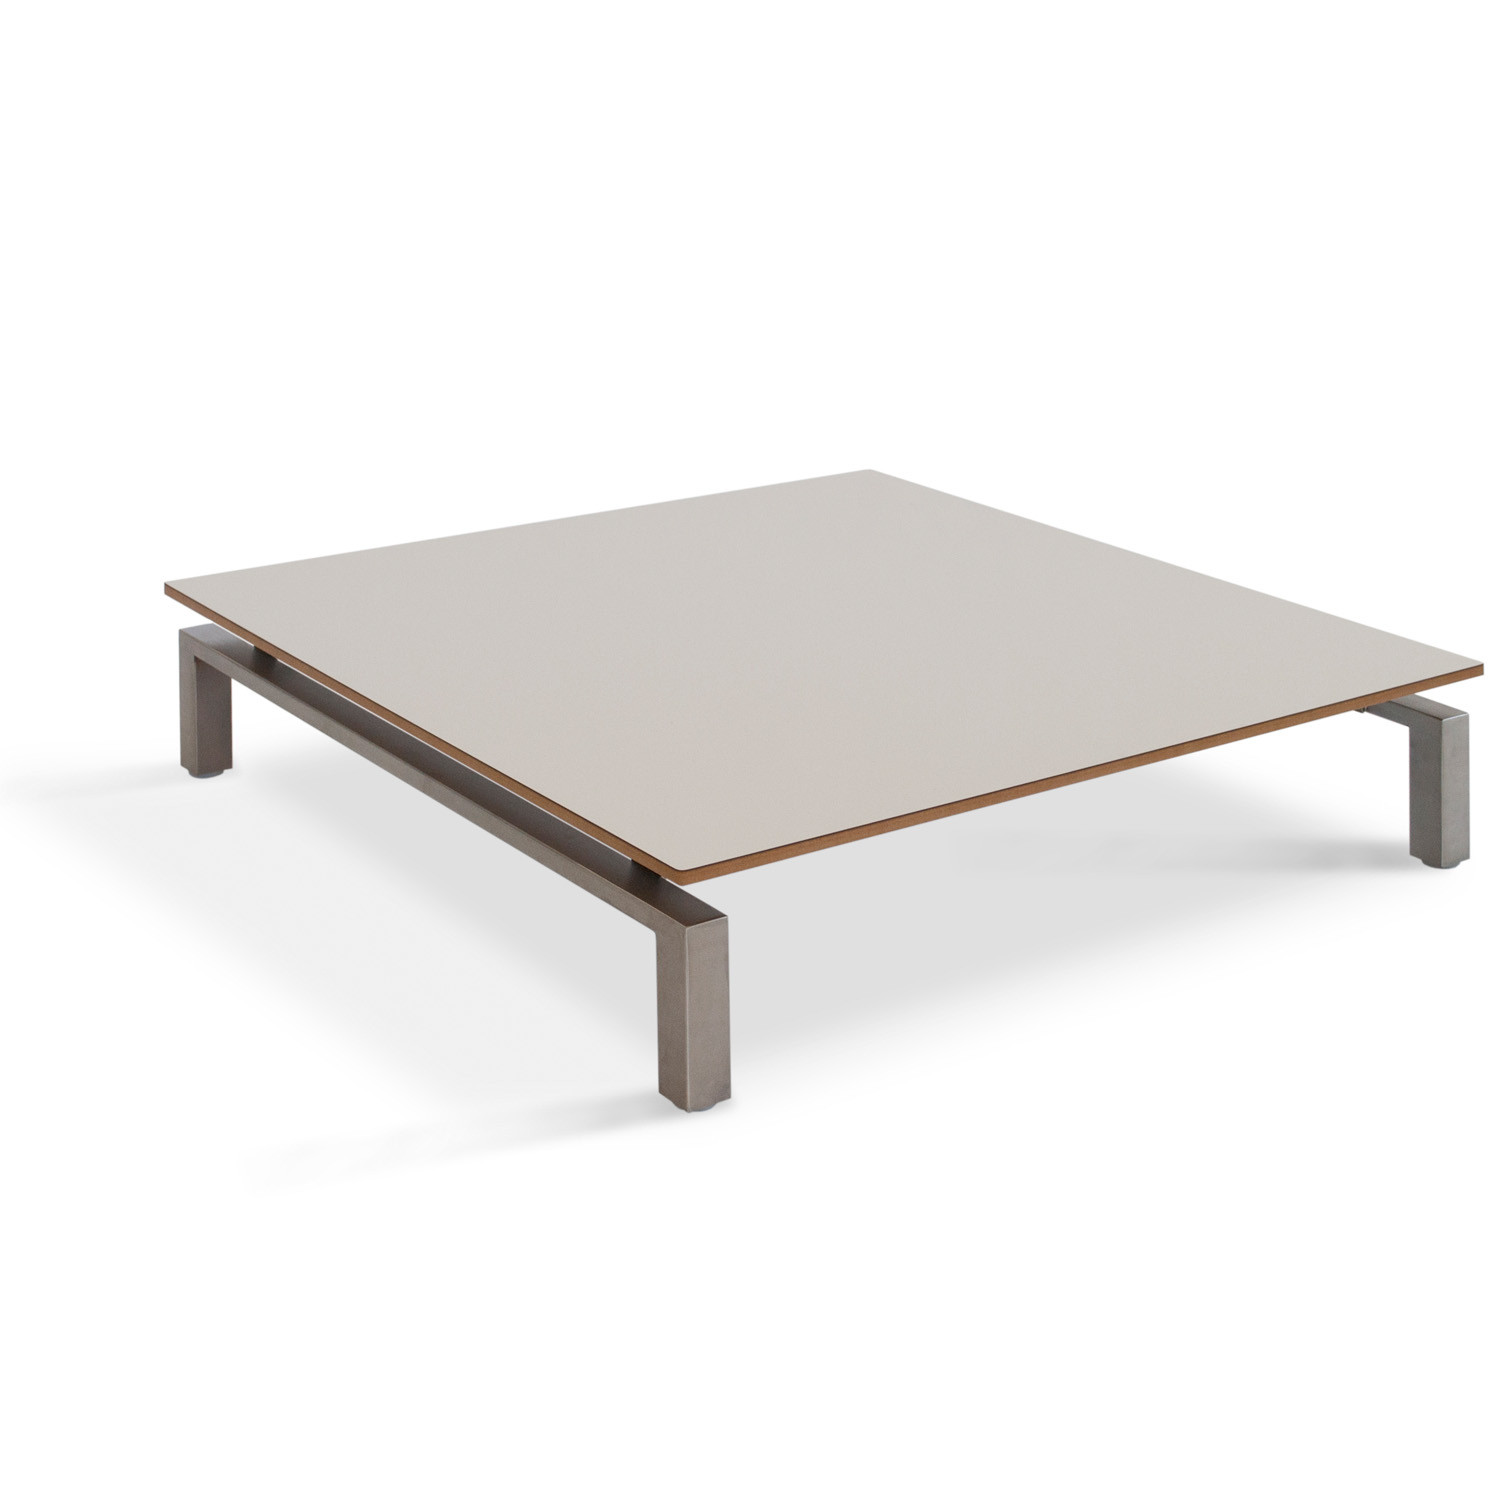 Hm93 Coffee Table